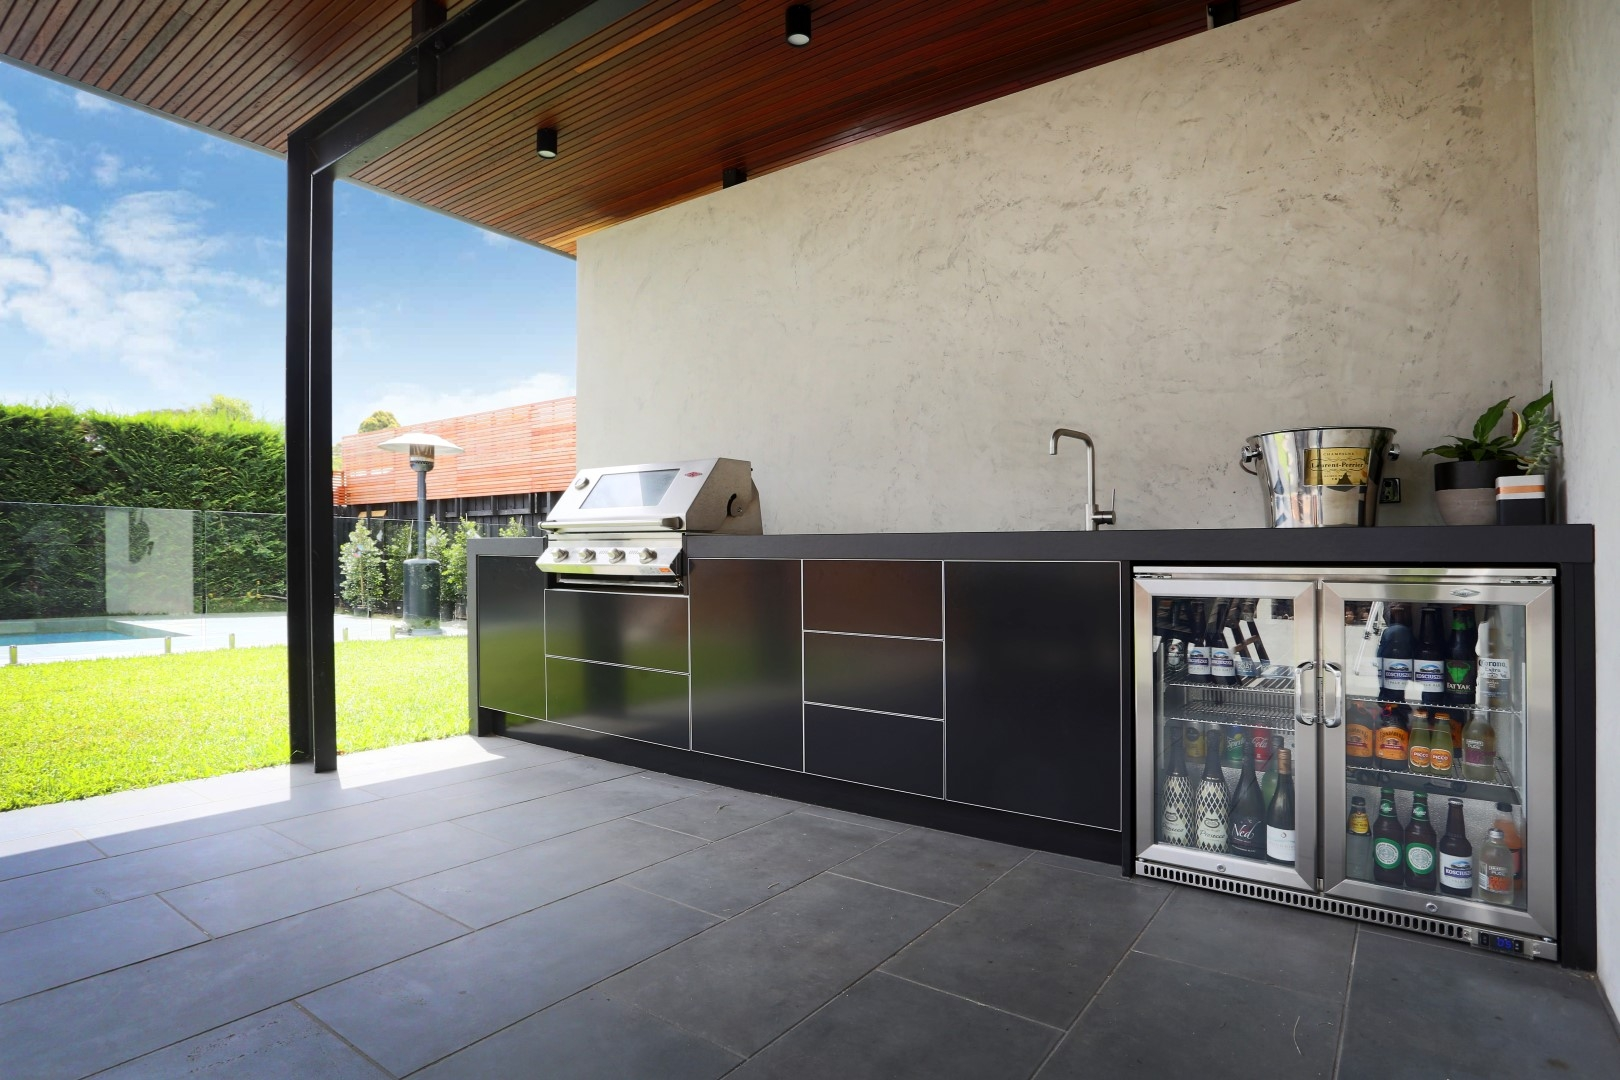 Beefeater-Signature-4-Burner-BBQ-Dekton-Sirius-Matte-Black-Outdoor-Kitchen-Hampton-Melbourne